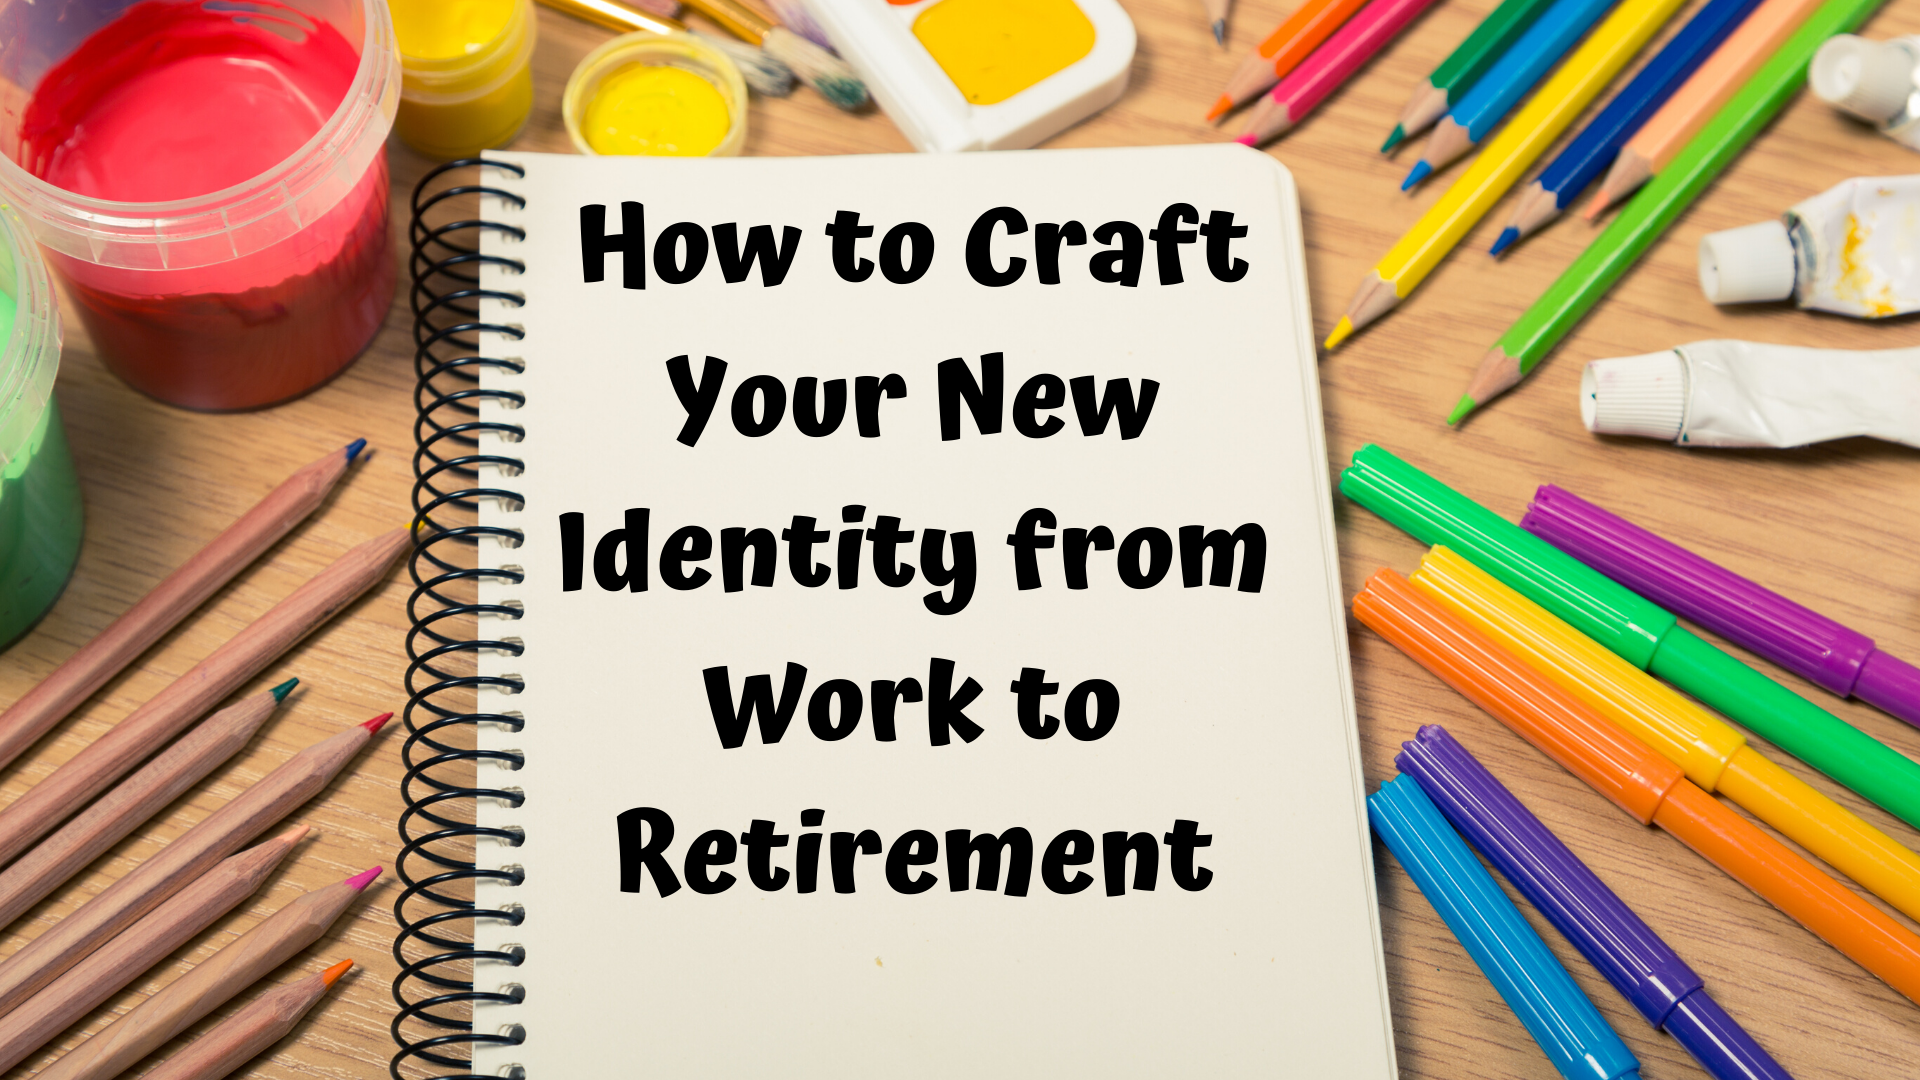 Transitioning from a Work Identity to a Retirement Identity